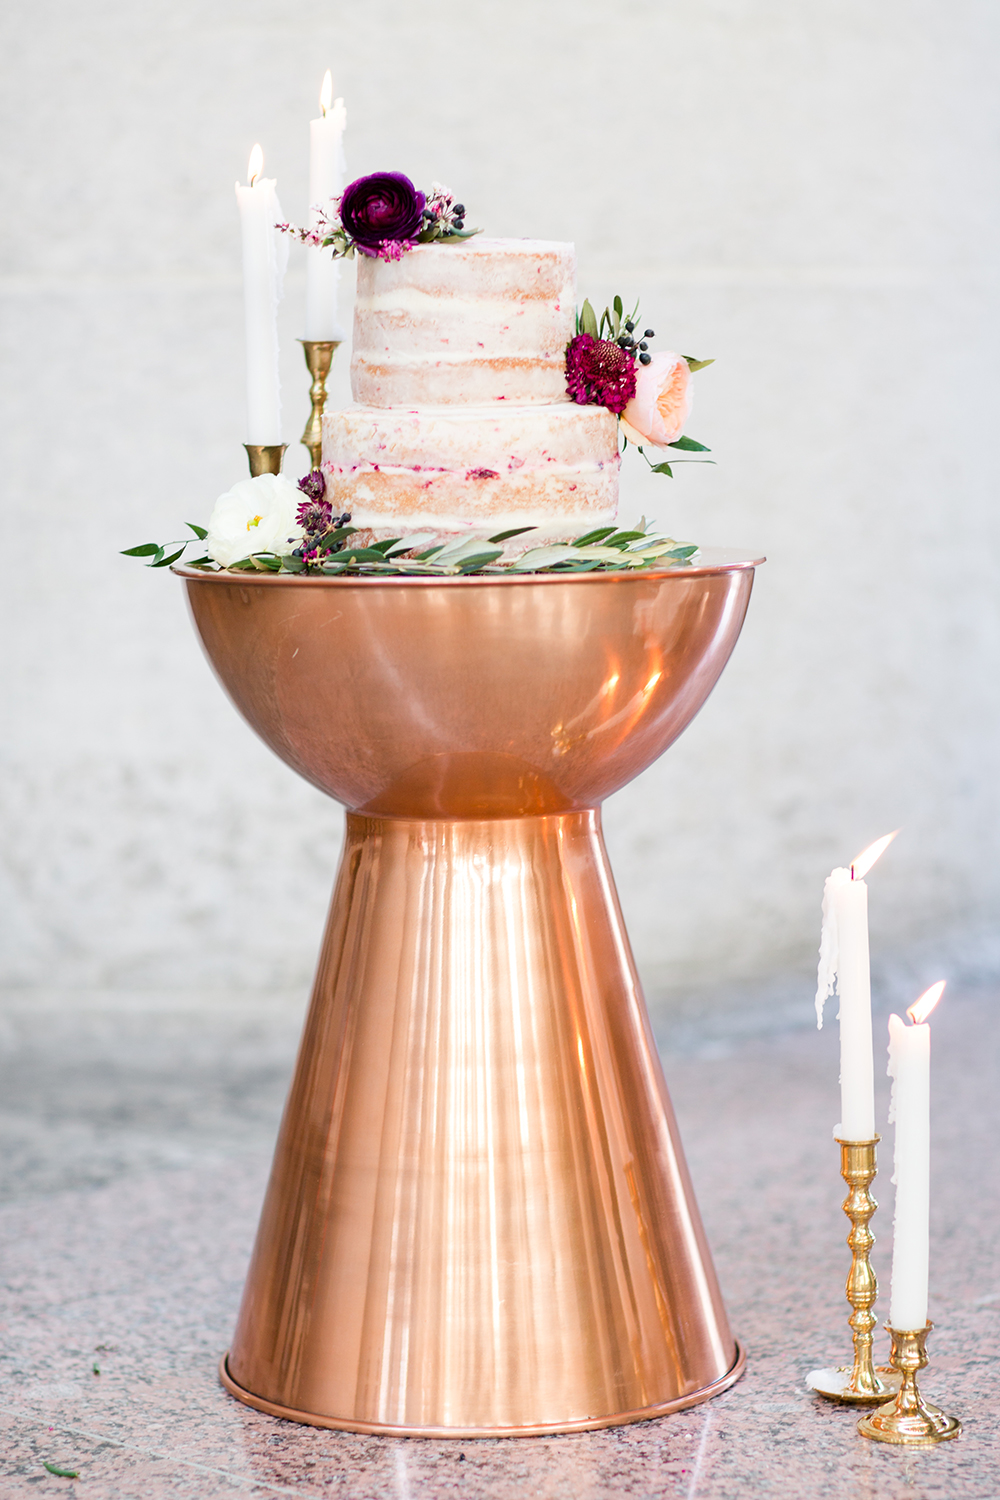 wedding cake displays - photo by Lauren Lee Photography http://ruffledblog.com/modern-grecian-inspired-wedding-ideas